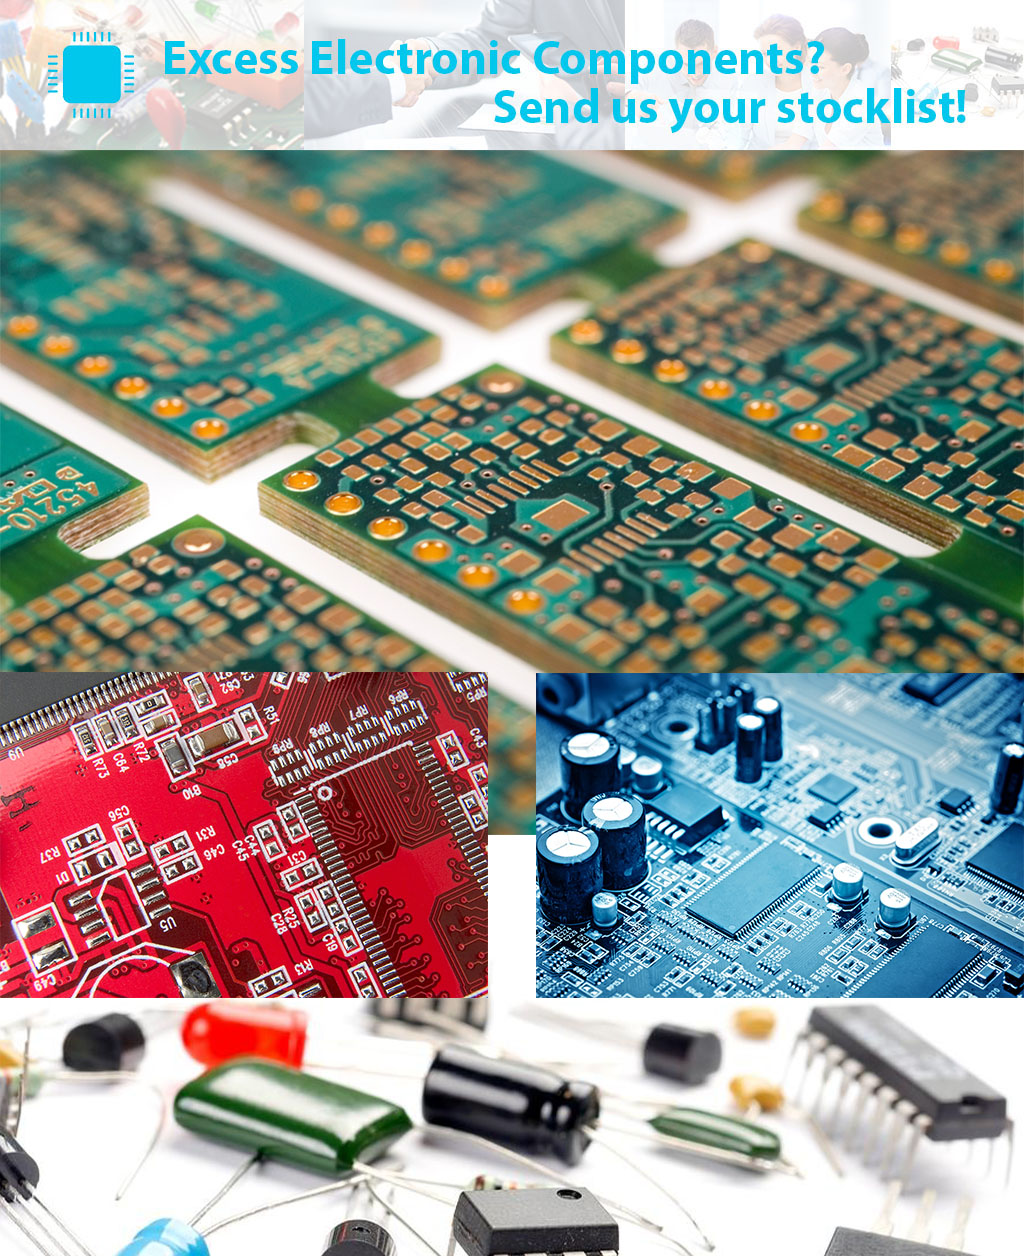 excess electronic components